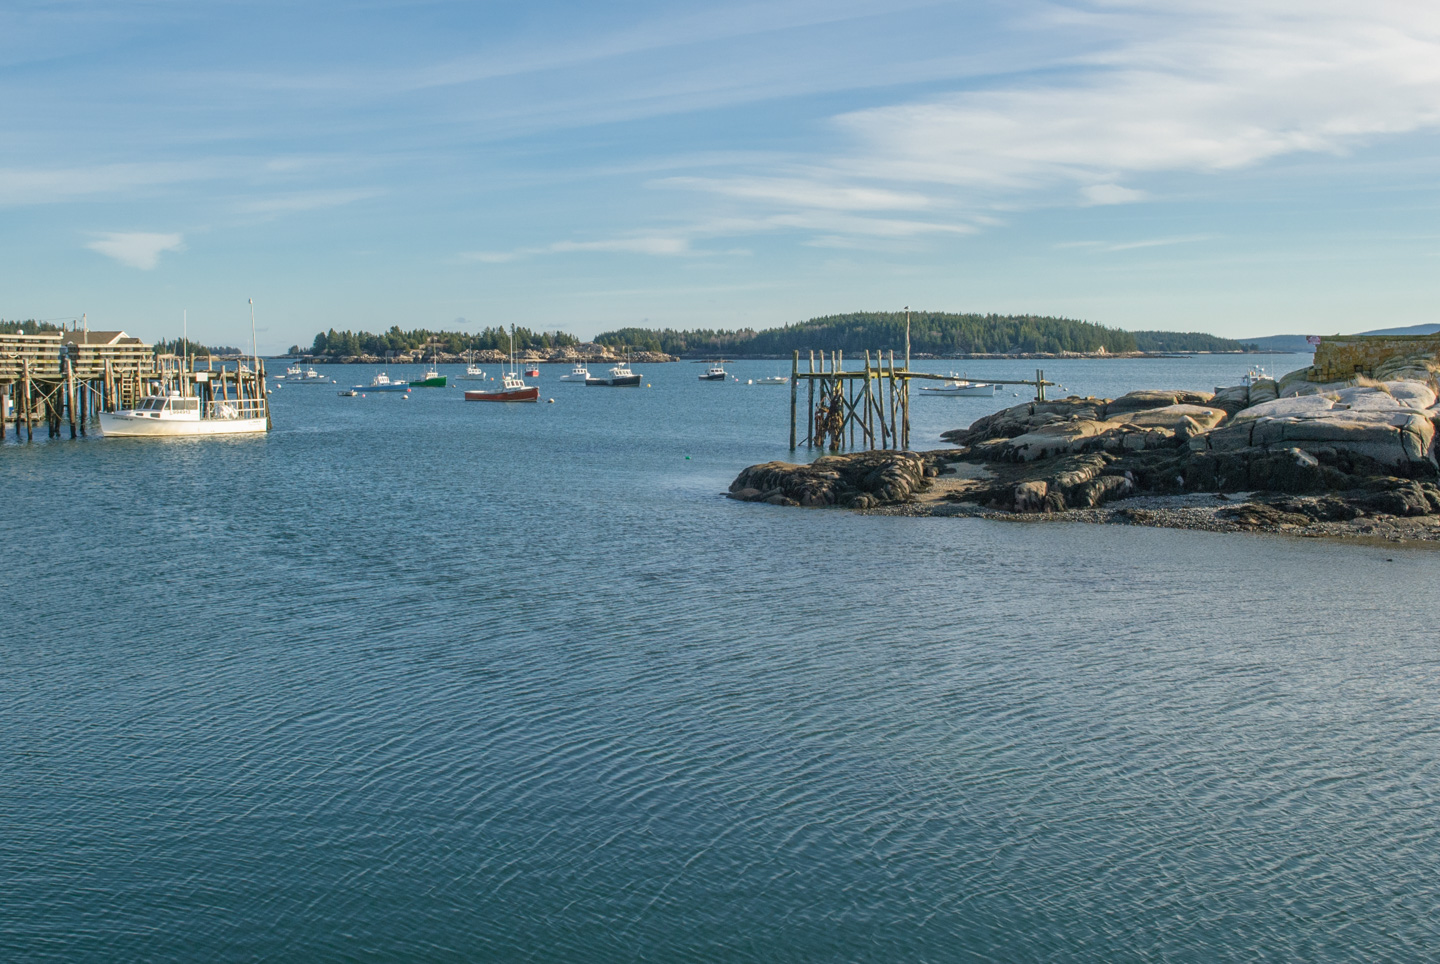 View of the water in Stonington Maine